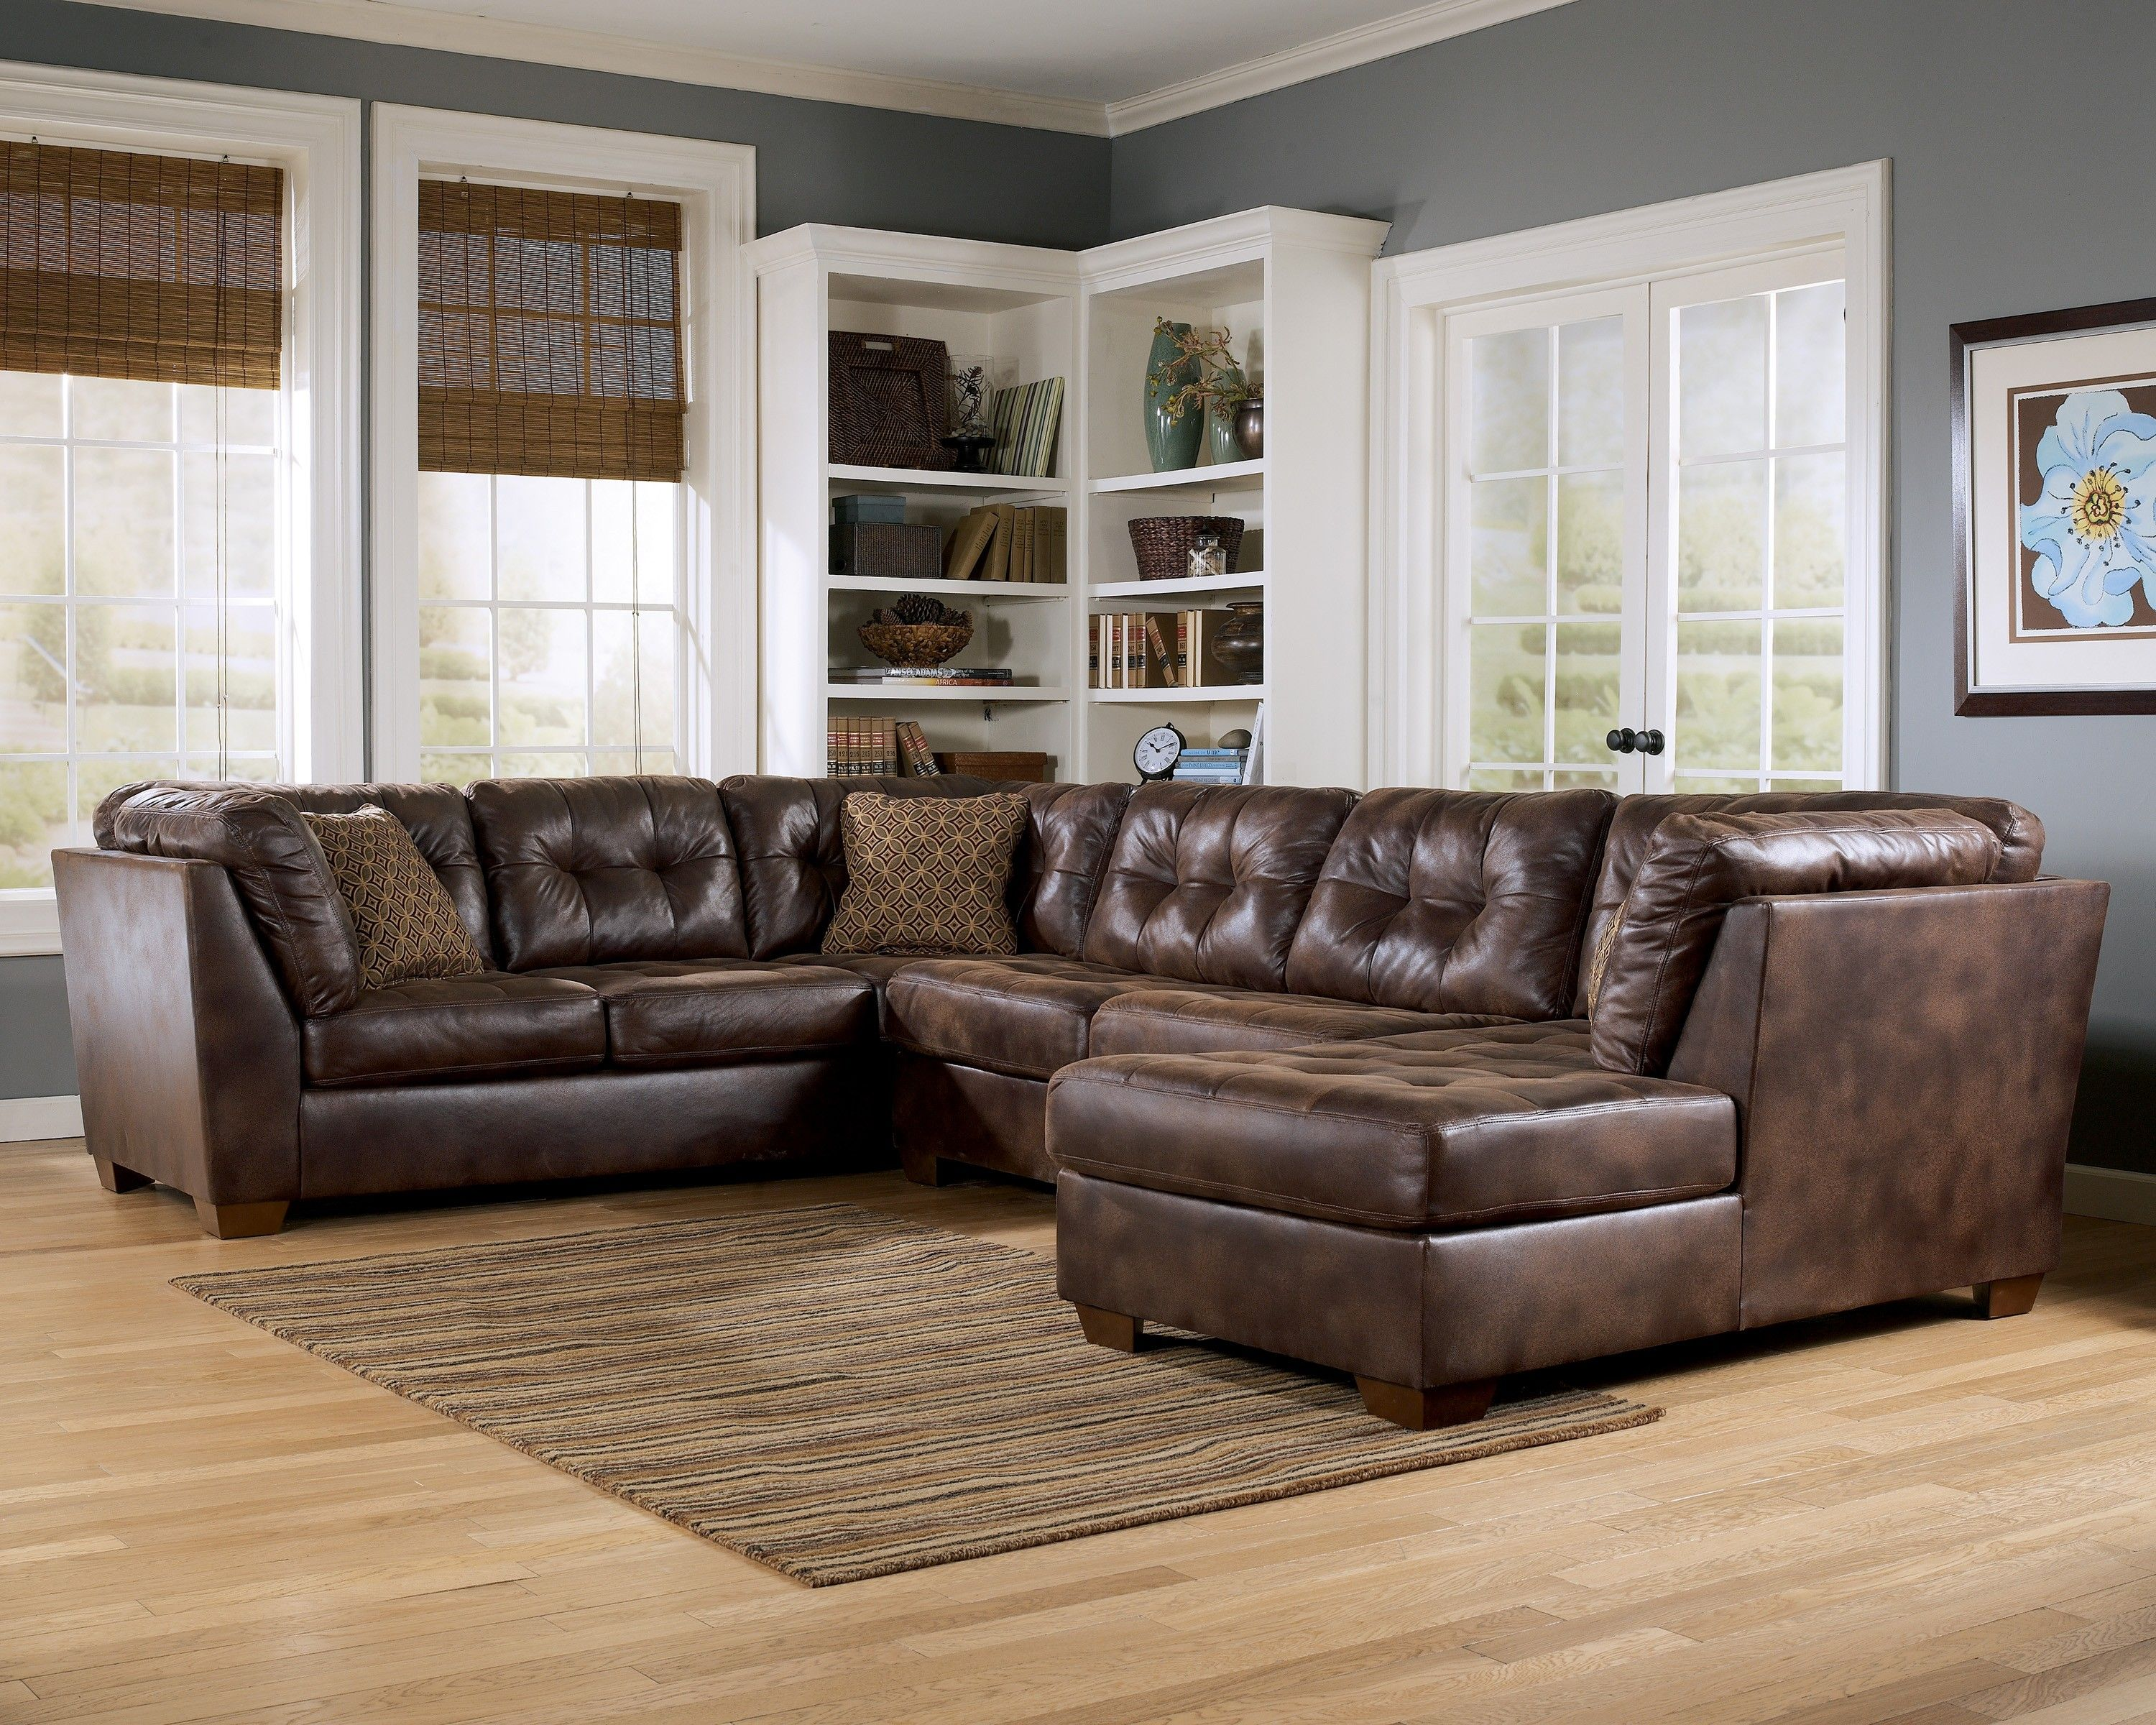 Best oversized leather sectional sofa ideas for living room Living